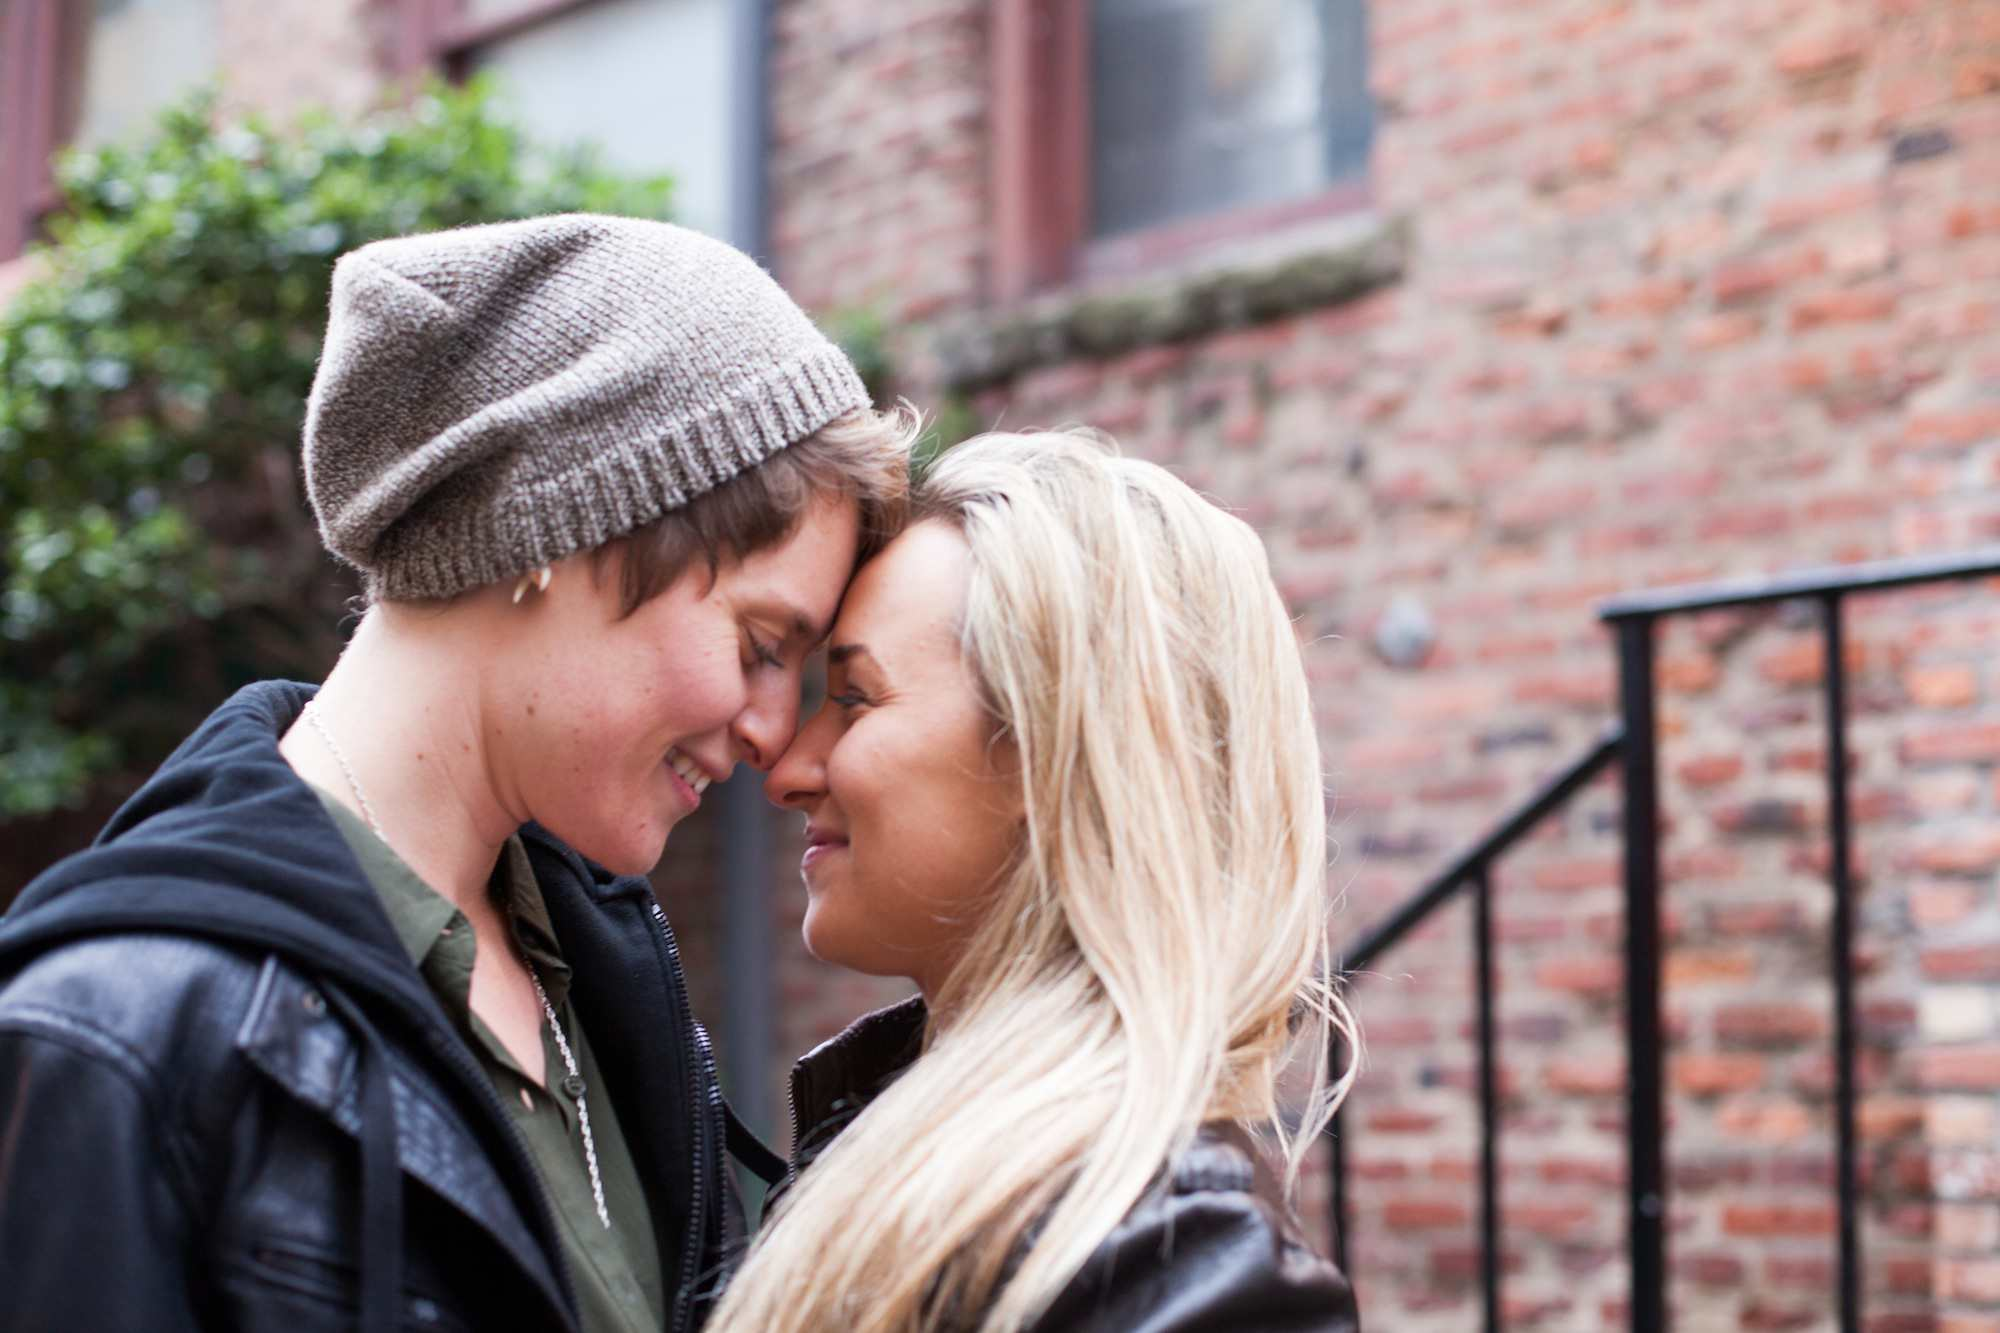 Young lesbian couple, non-specific urban setting